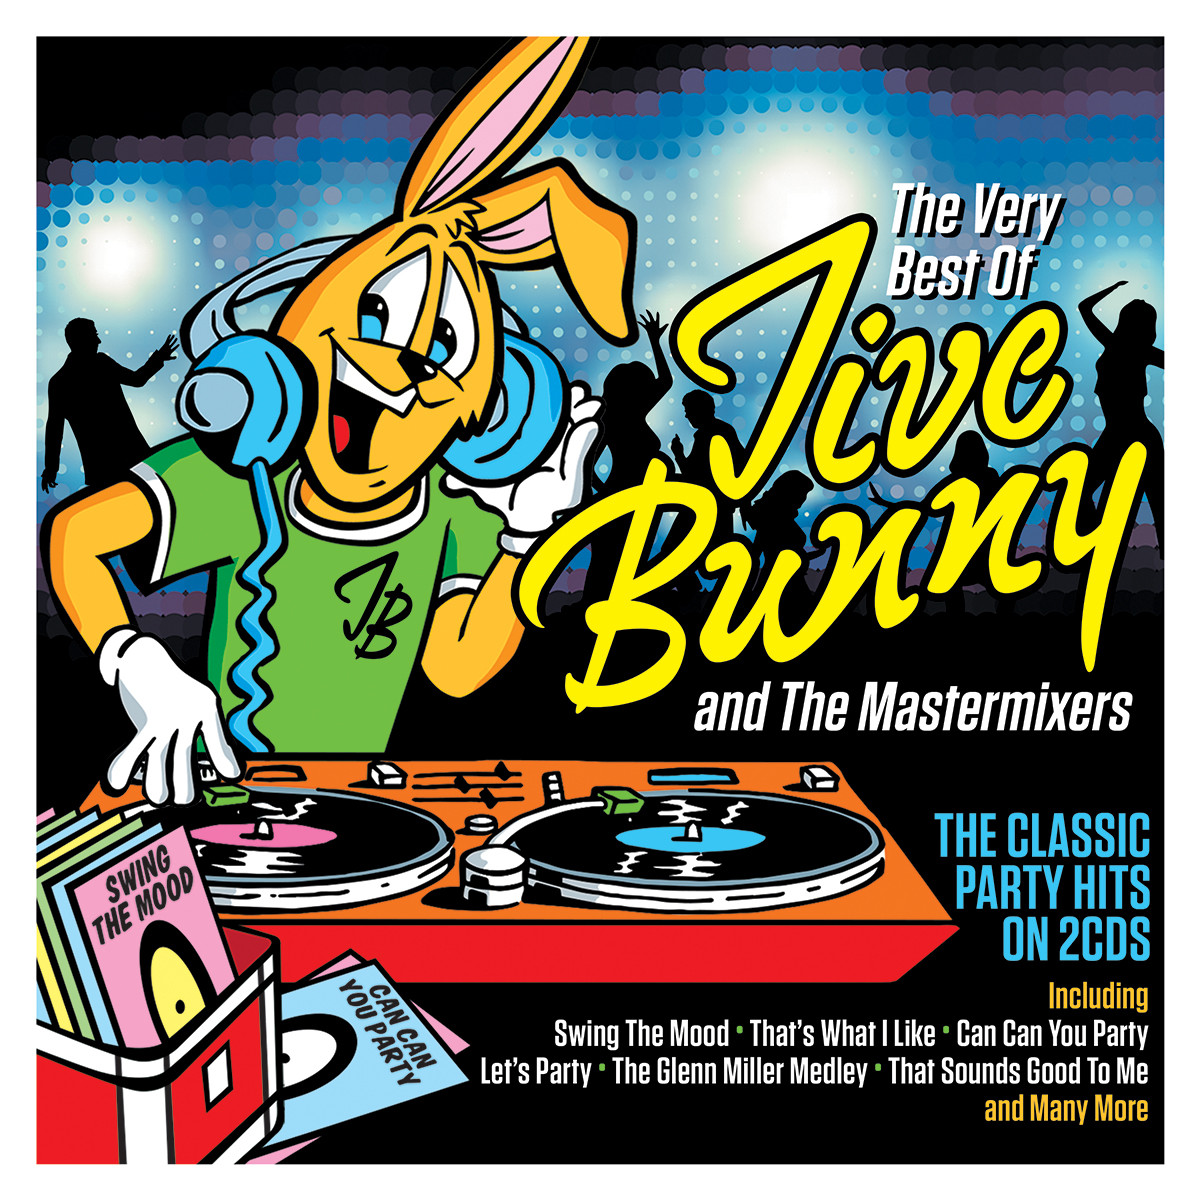 Jive Bunny And The Mastermixers - The Very Best Of 2017